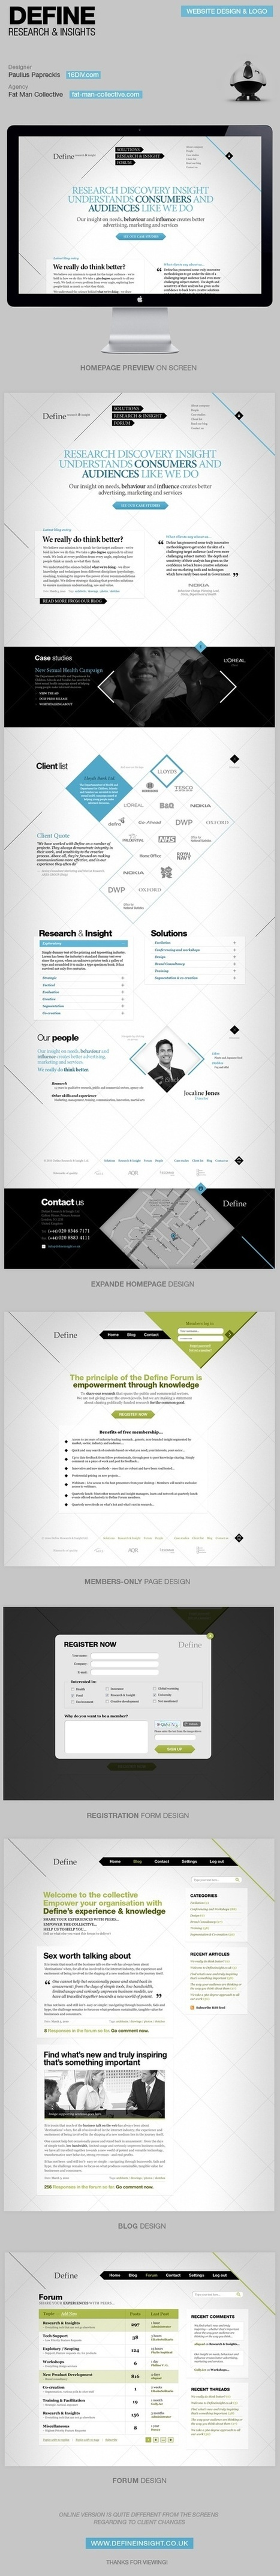 Web design. | Veille Web Graphisme | Scoop.it